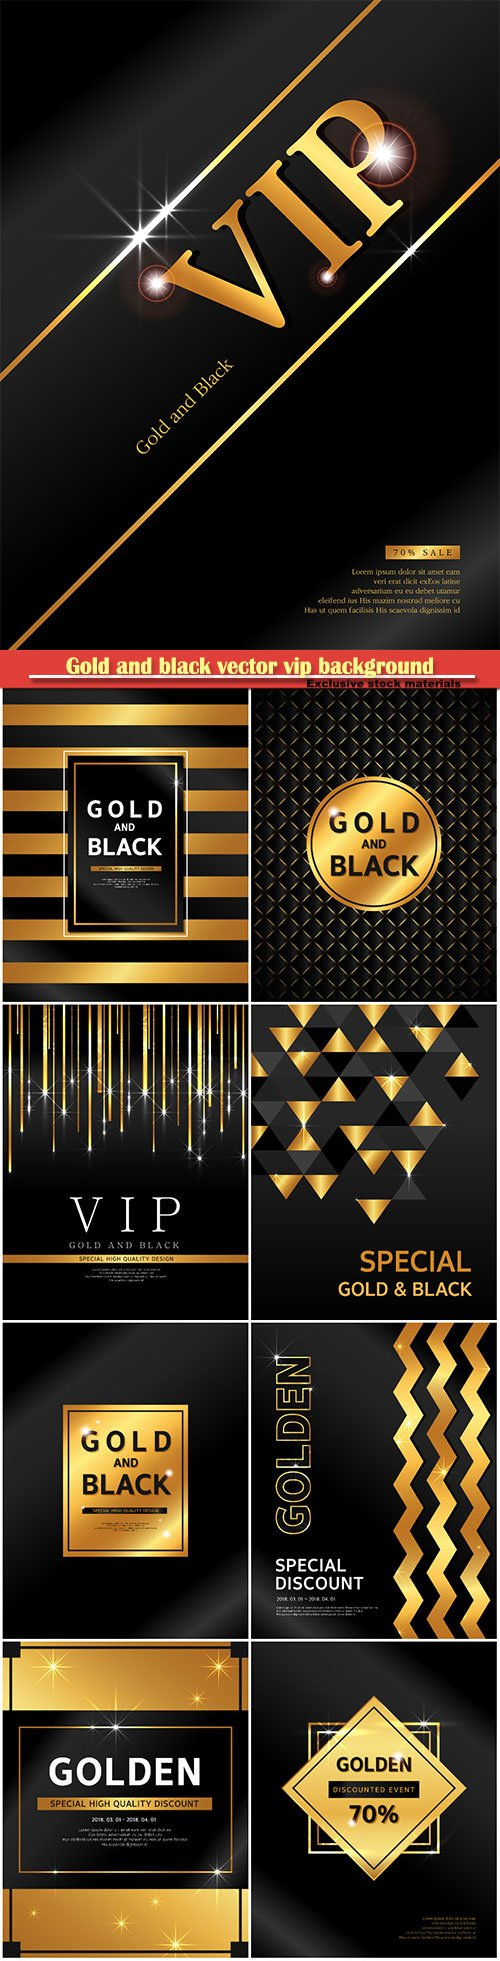 Gold and black vector vip background